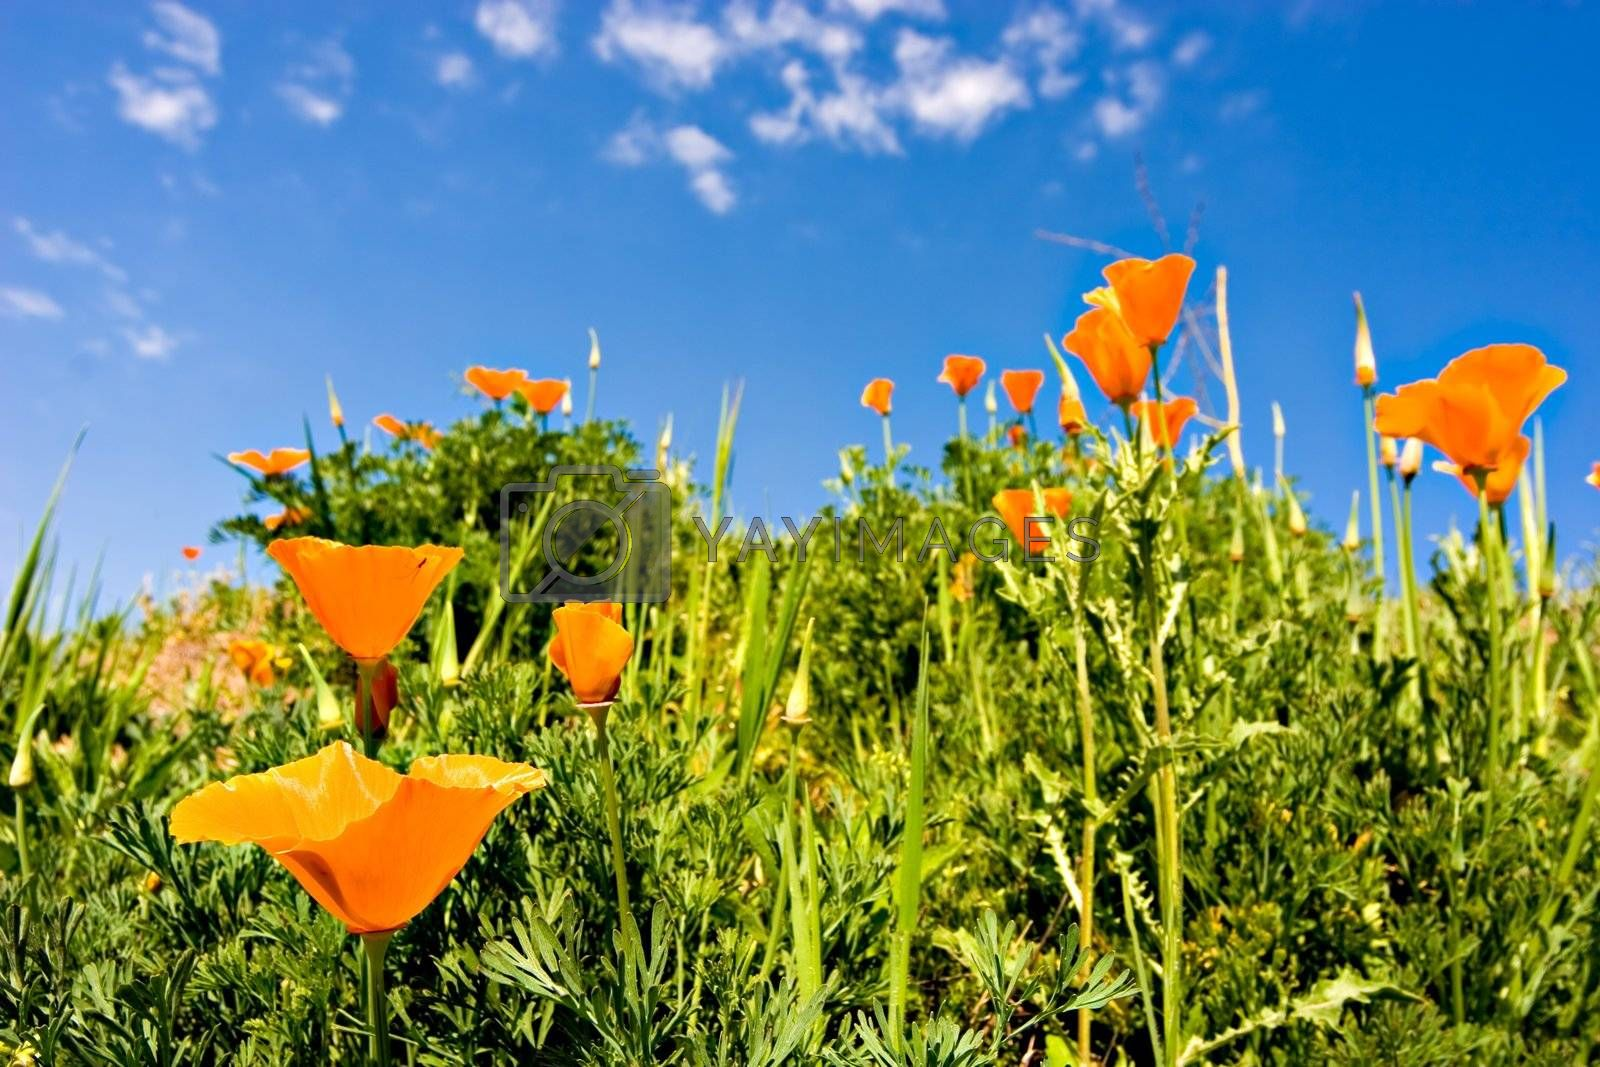 Orange poppies on a green field and a beautiful blue sky